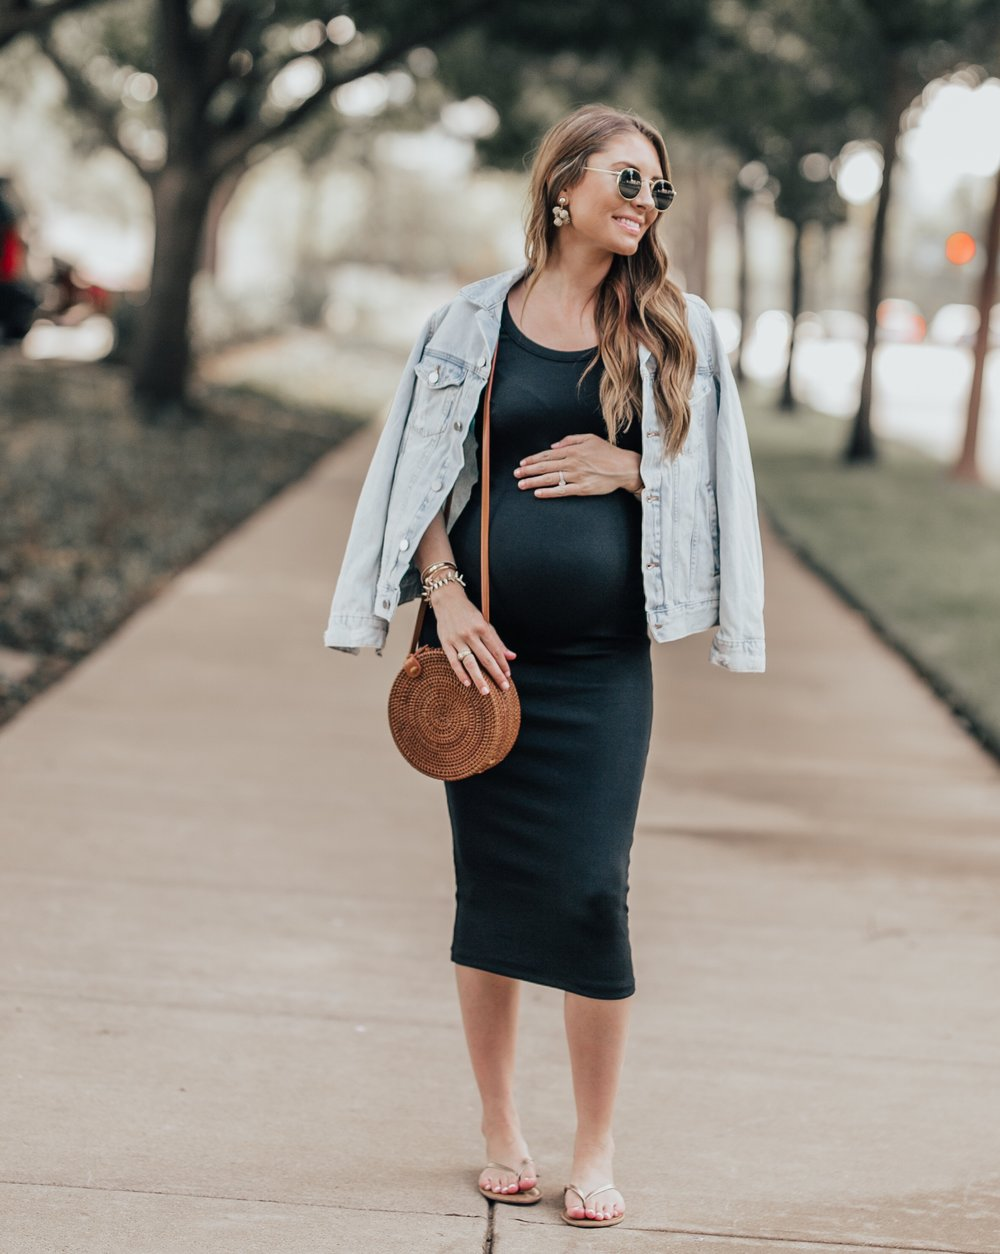 Black Tank Dress - Styled again with a denim jacket!